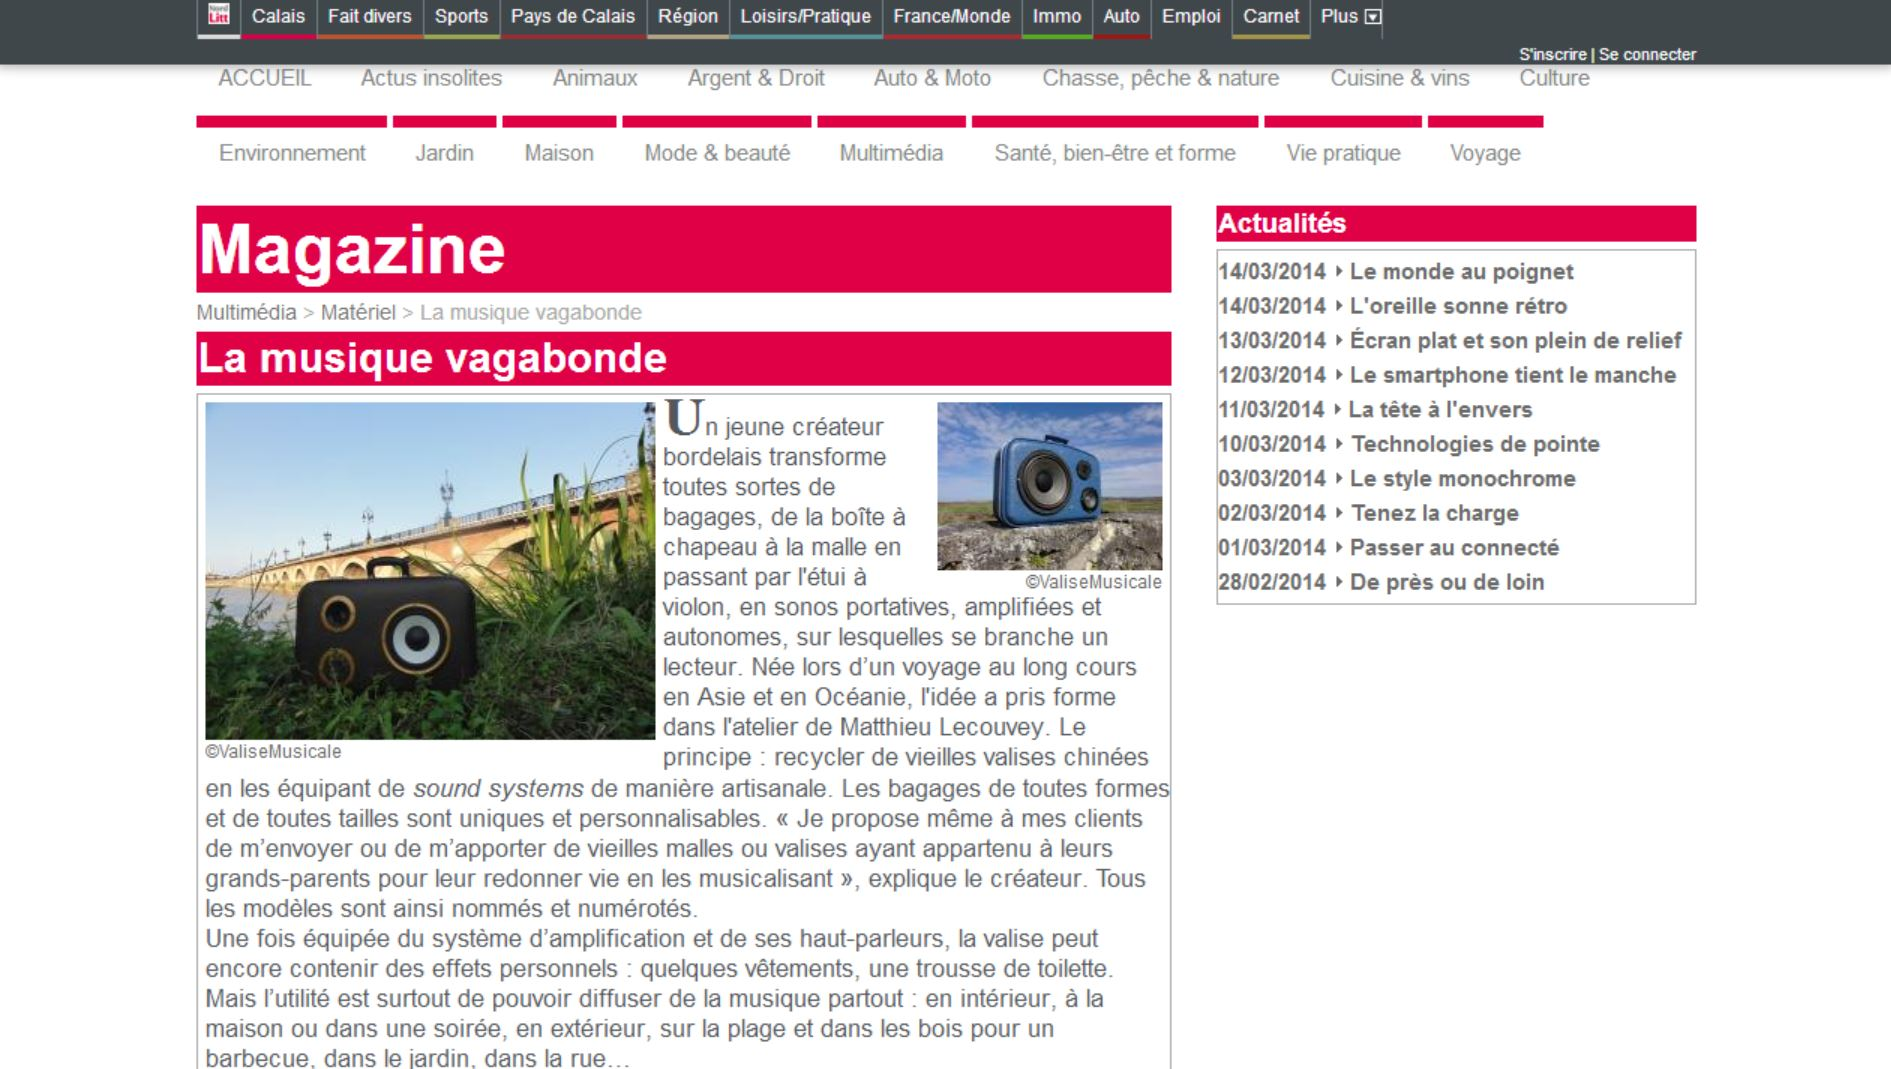 valise-musicale_article_nordlittoral.fr